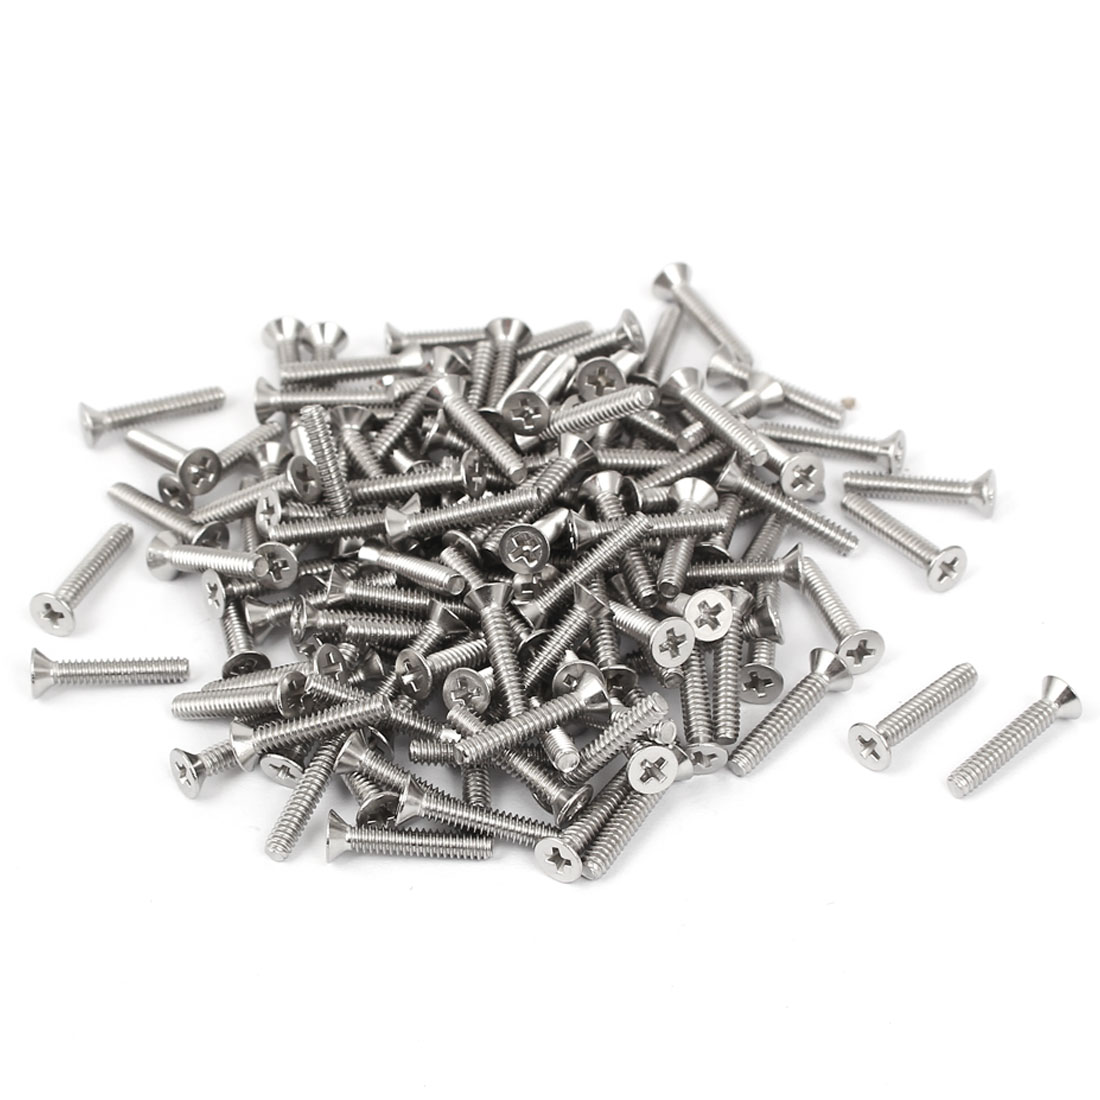 "4#-40x5/8"" Stainless Steel Phillips Flat Countersunk Head Machine Screws 100pcs"